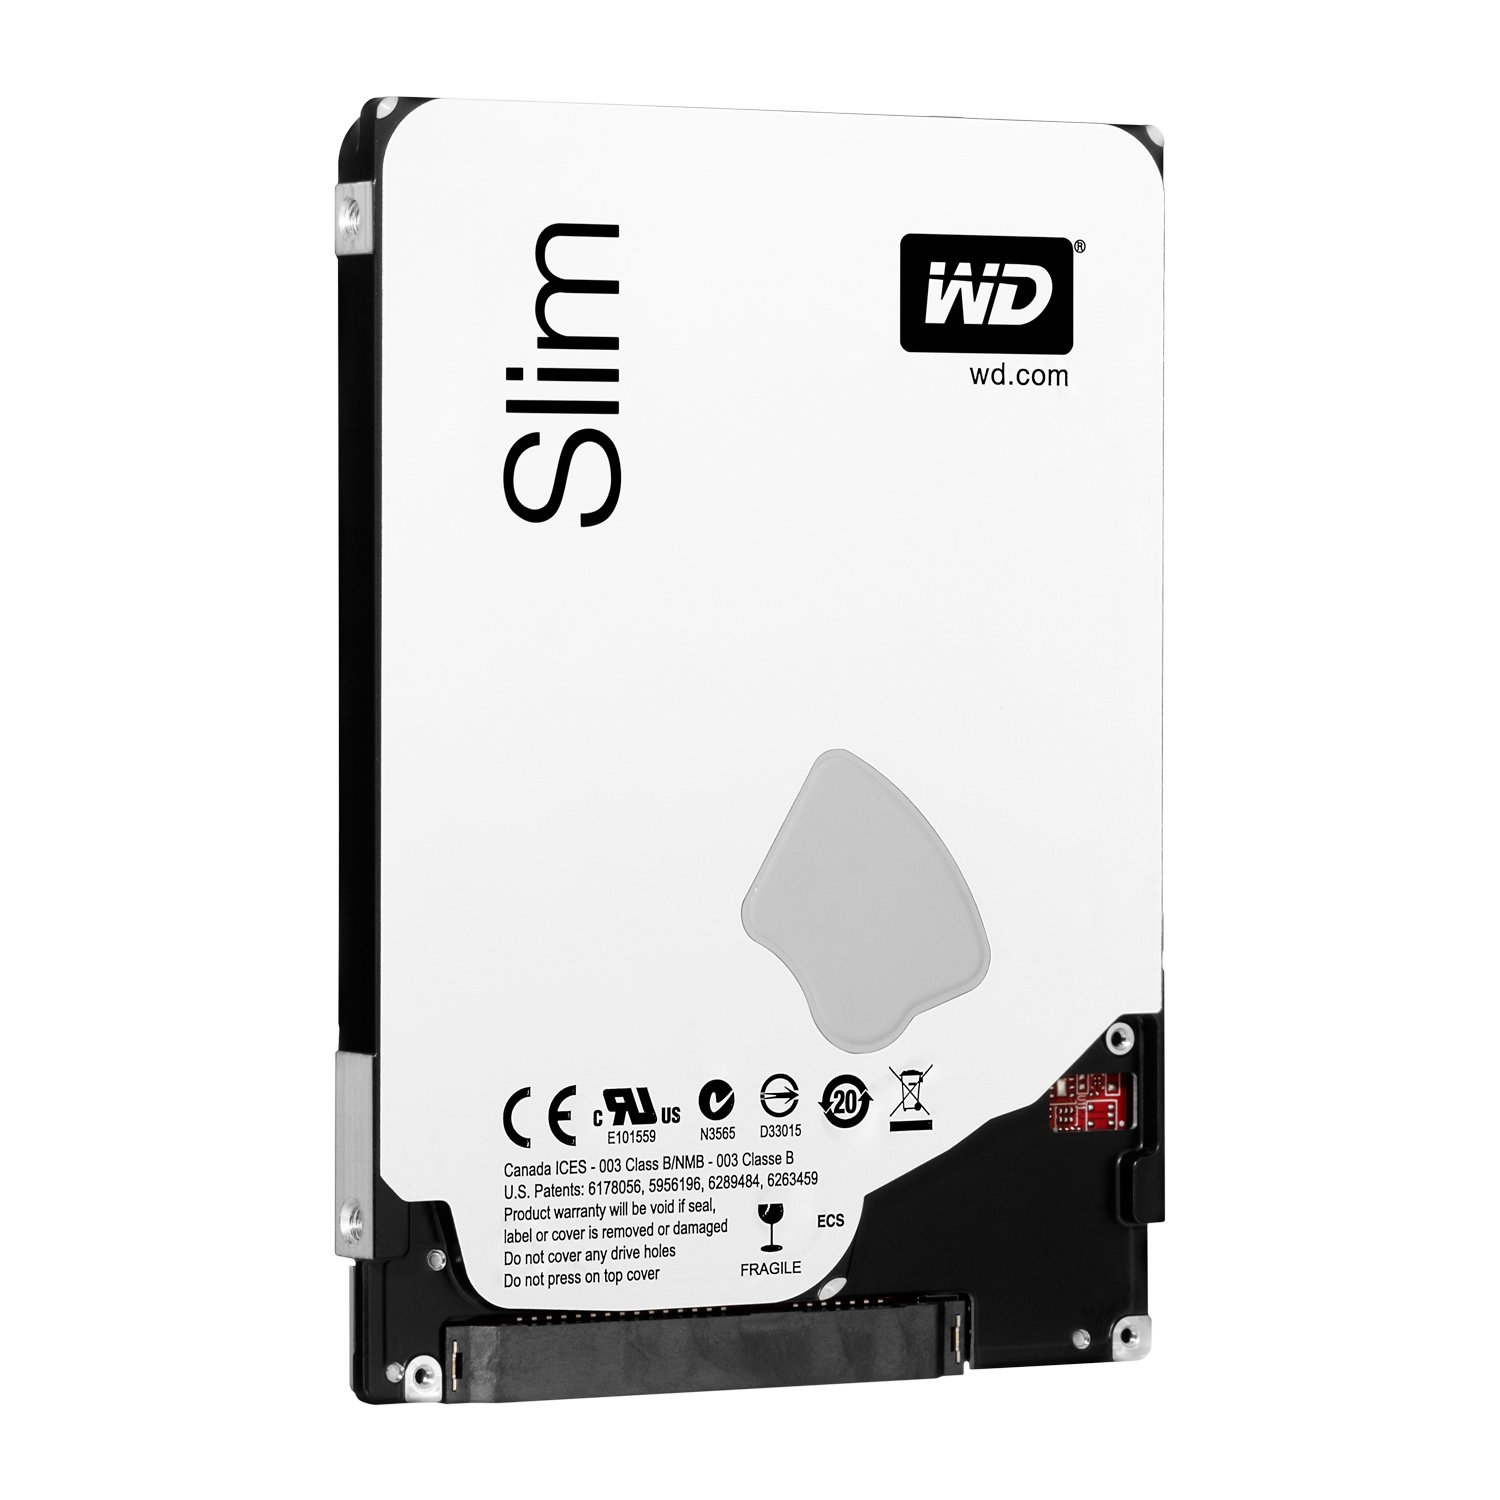 Wd Blue 500 Gb Interne Mobile Festplatte Slim Version 7 Amazonde